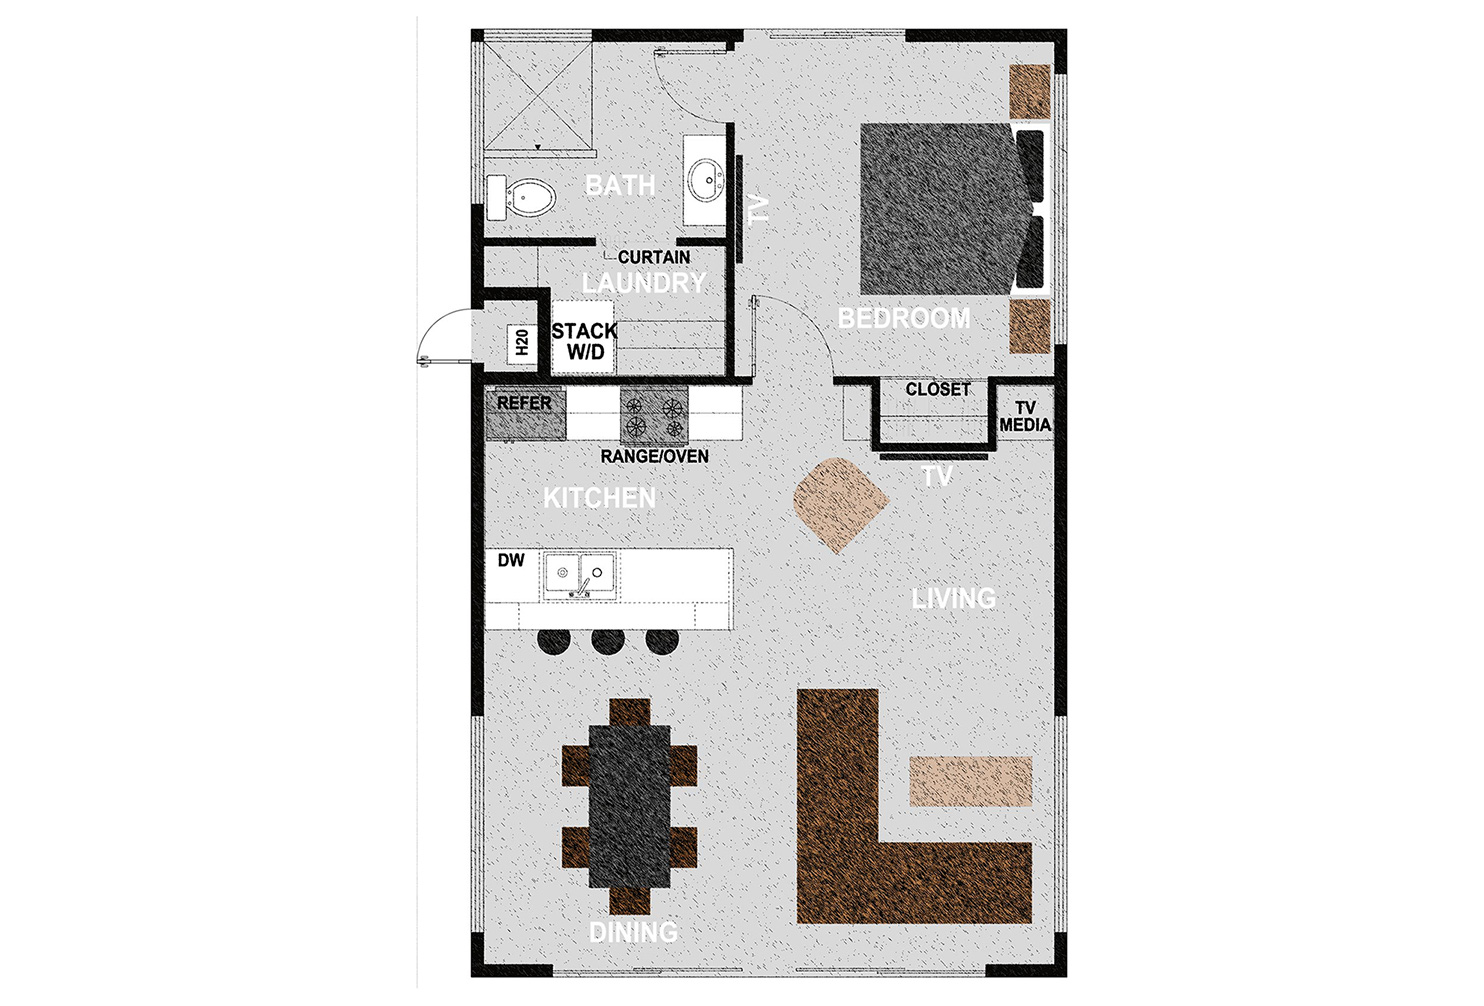 HM770 - The home consists of one bedroom, one bathroom, laundry room and open kitchen, dining room and living room. It offers 770 square feet of conditioned living space. Exterior dimensions are approximately 35'x22'.